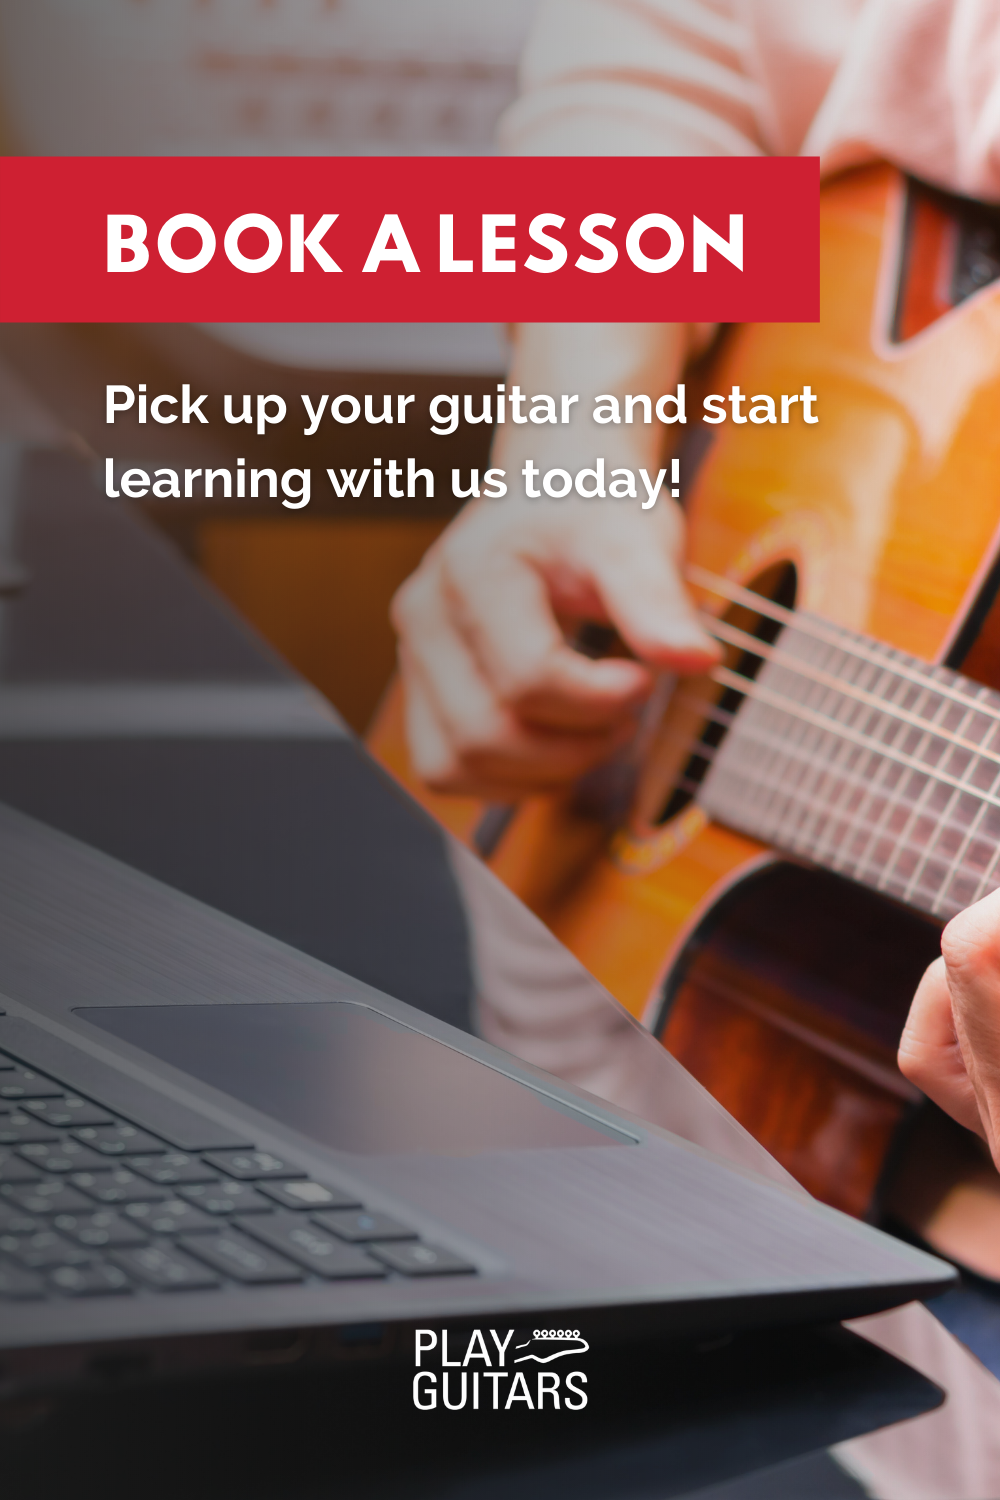 Mastering The 15 Most Important Guitar Chords For Beginners In 2020 Online Guitar Lessons Guitar Chords Beginner Guitar Lessons